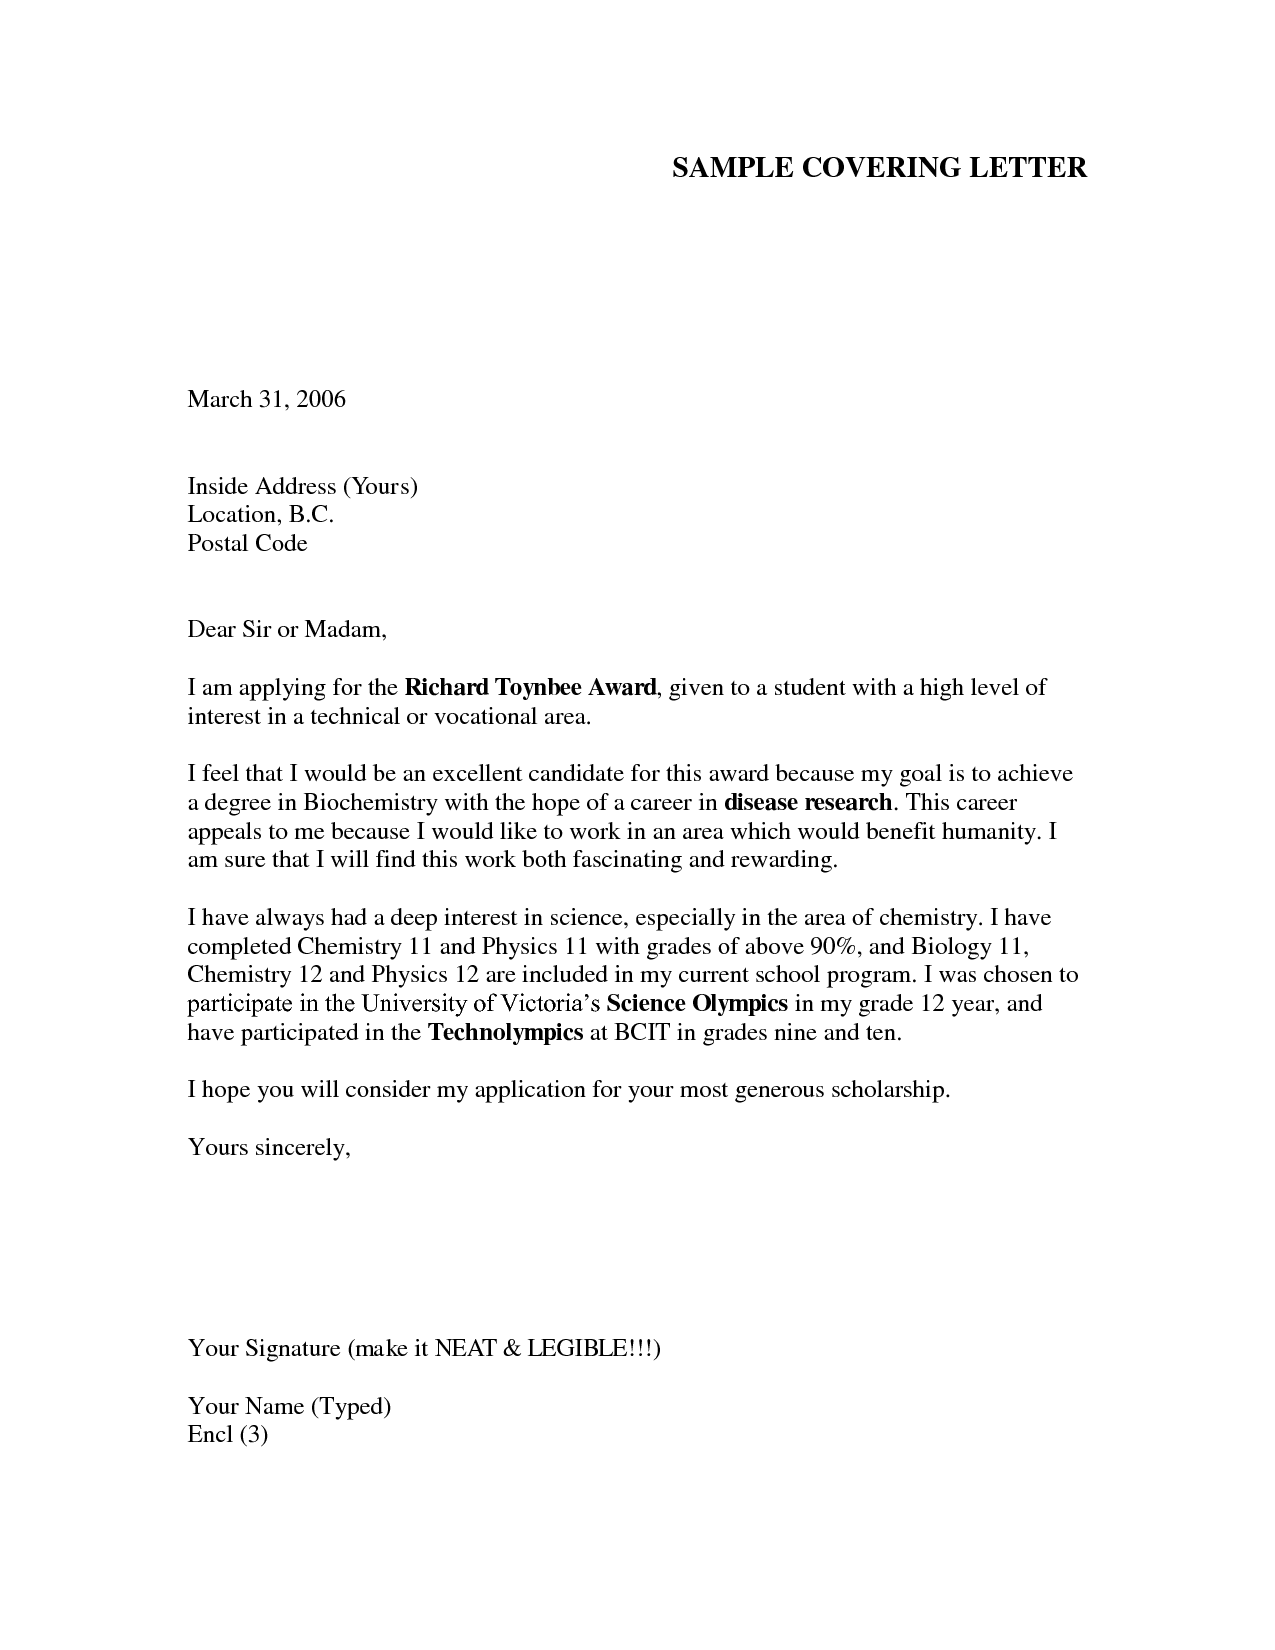 Cover Letter Example For Job Application cover letter example for ...